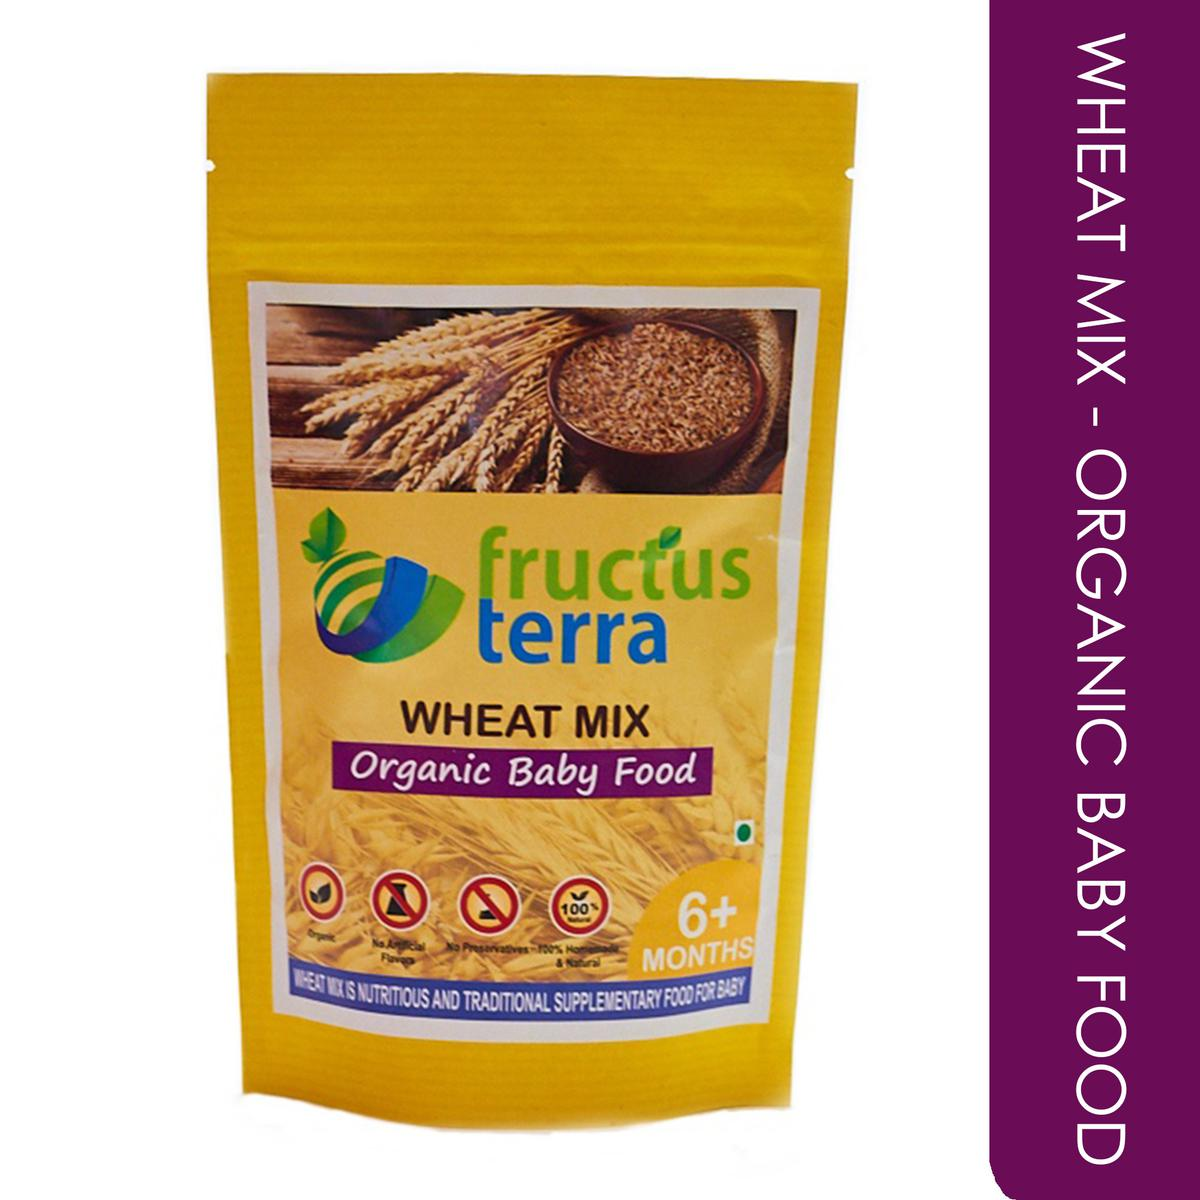 Certified Organic Sprouted Wheat Mix